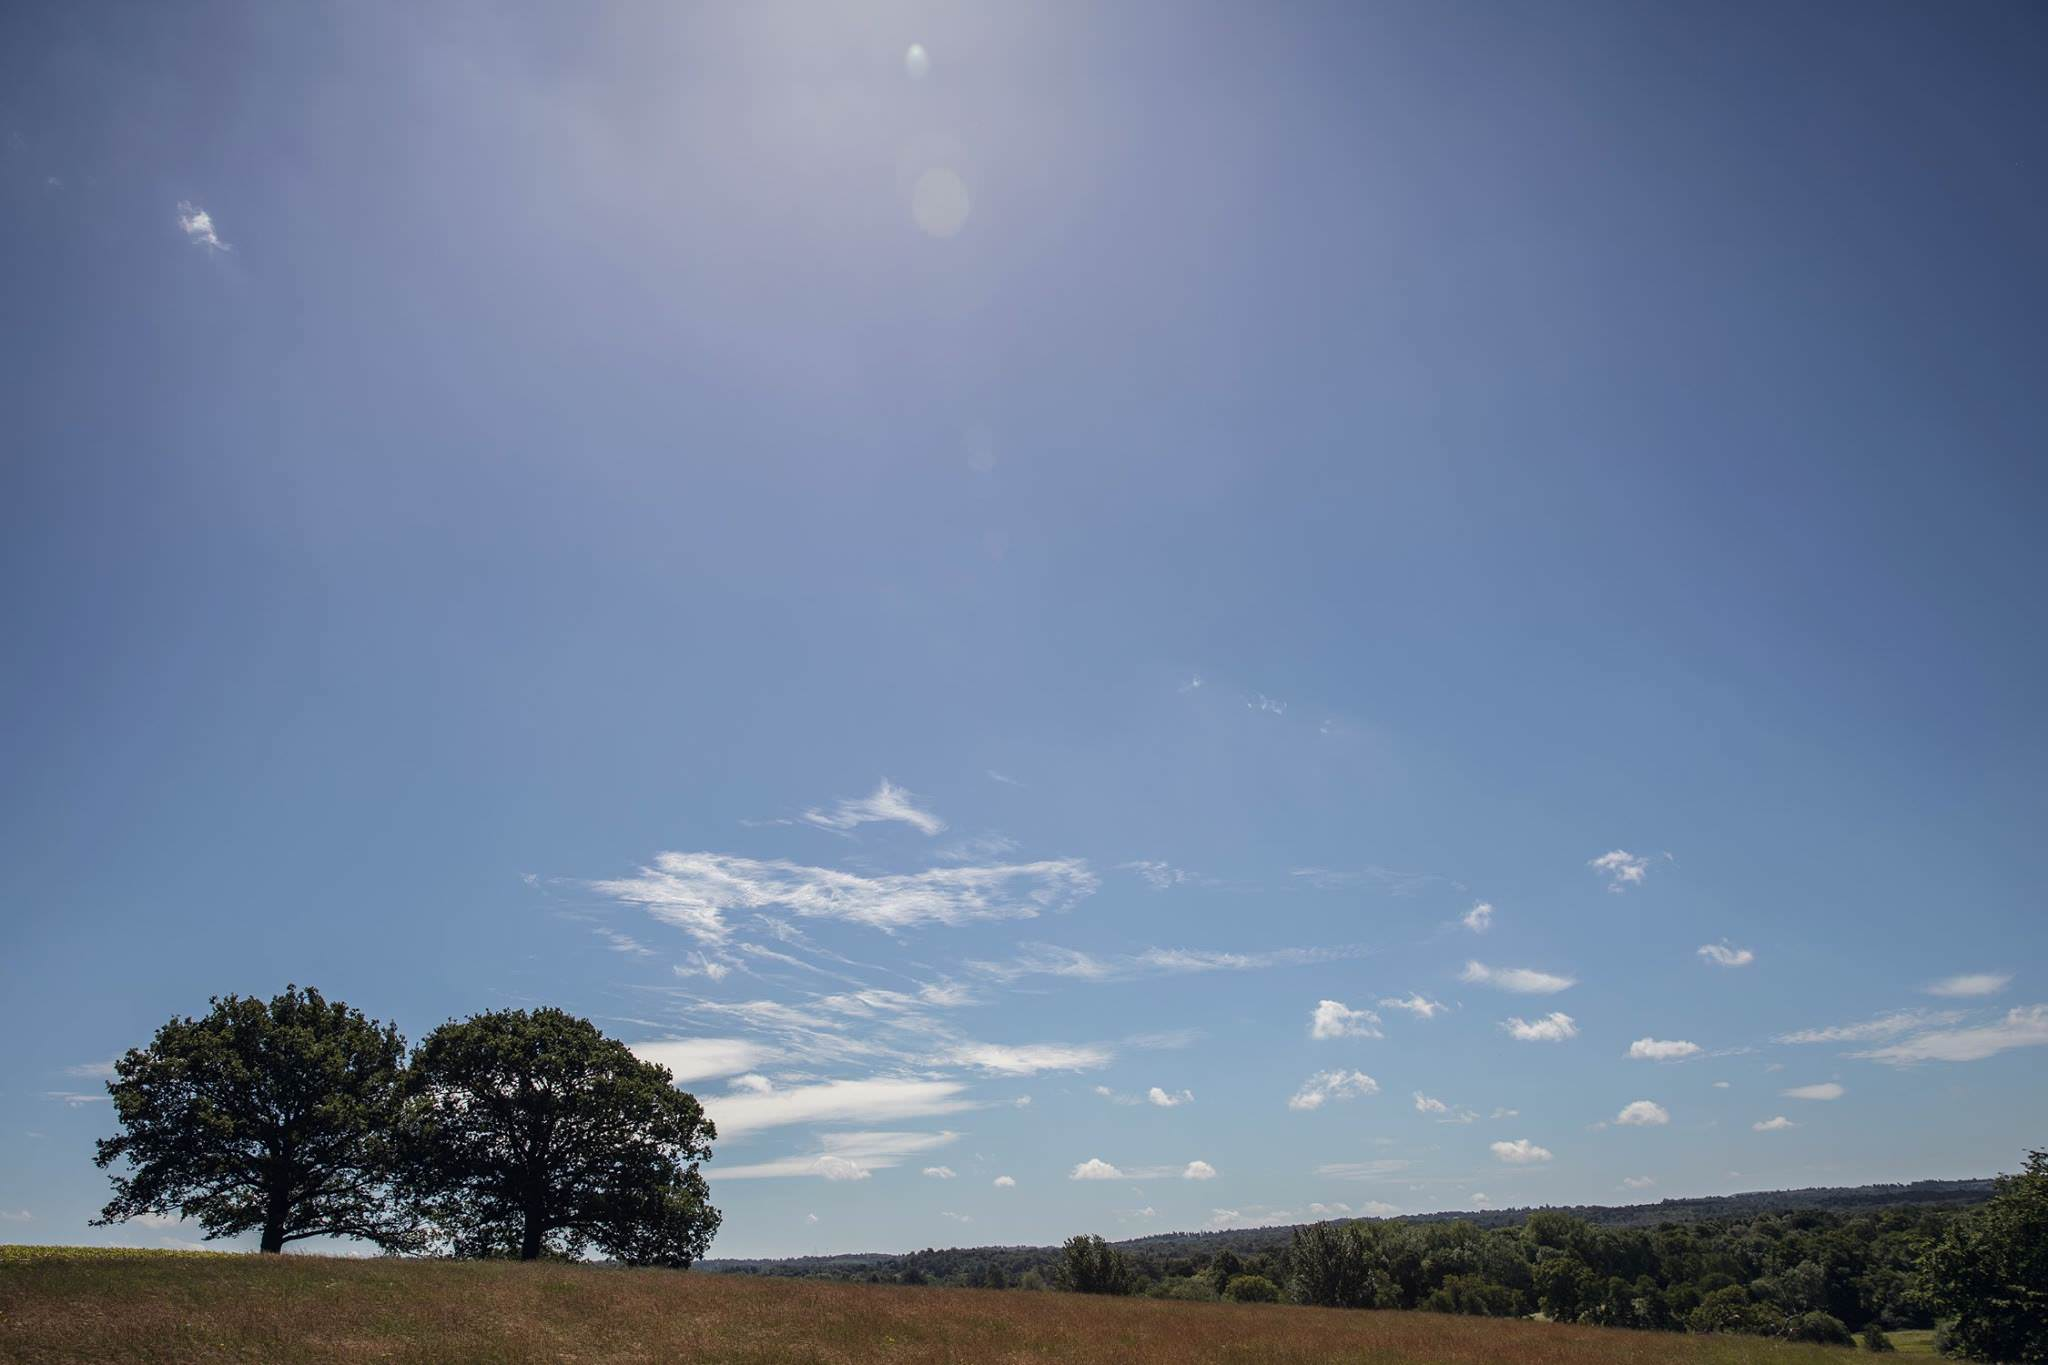 beautiful sunny day field with two oak trees outdoor ceremony venue